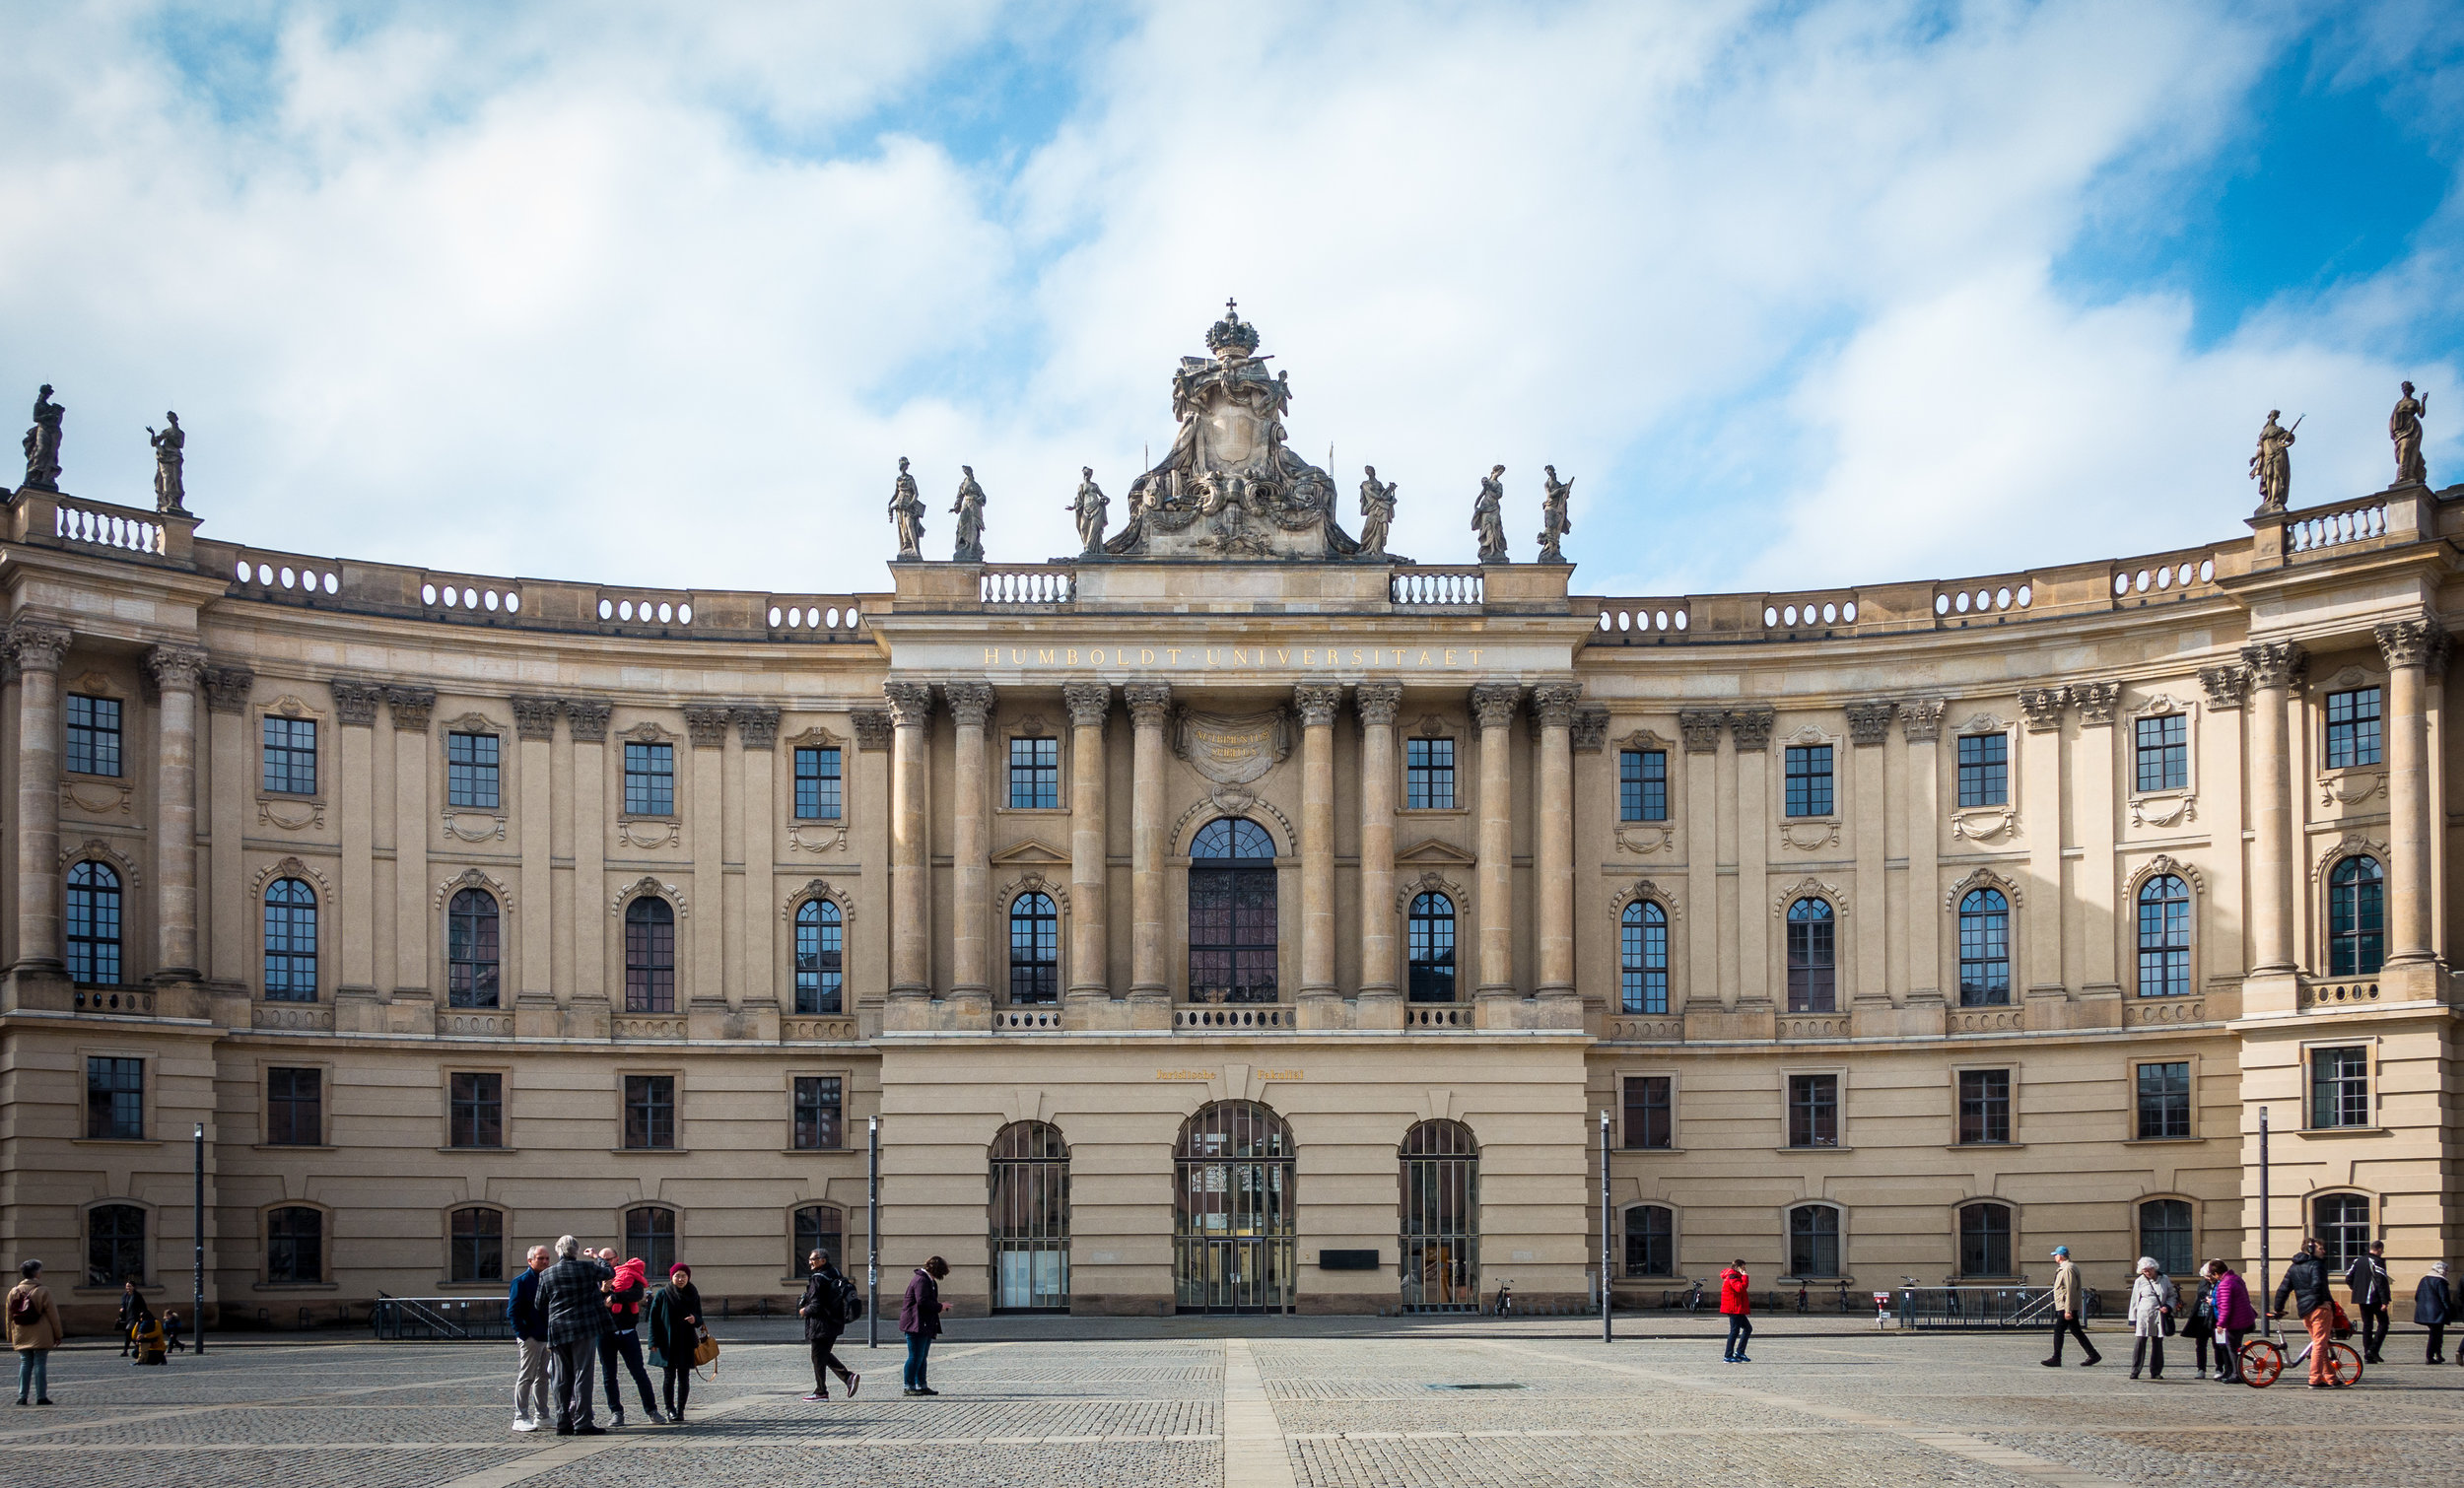 Humboldt University - established in 1810 it is the oldest of Berlin's 4 universities.